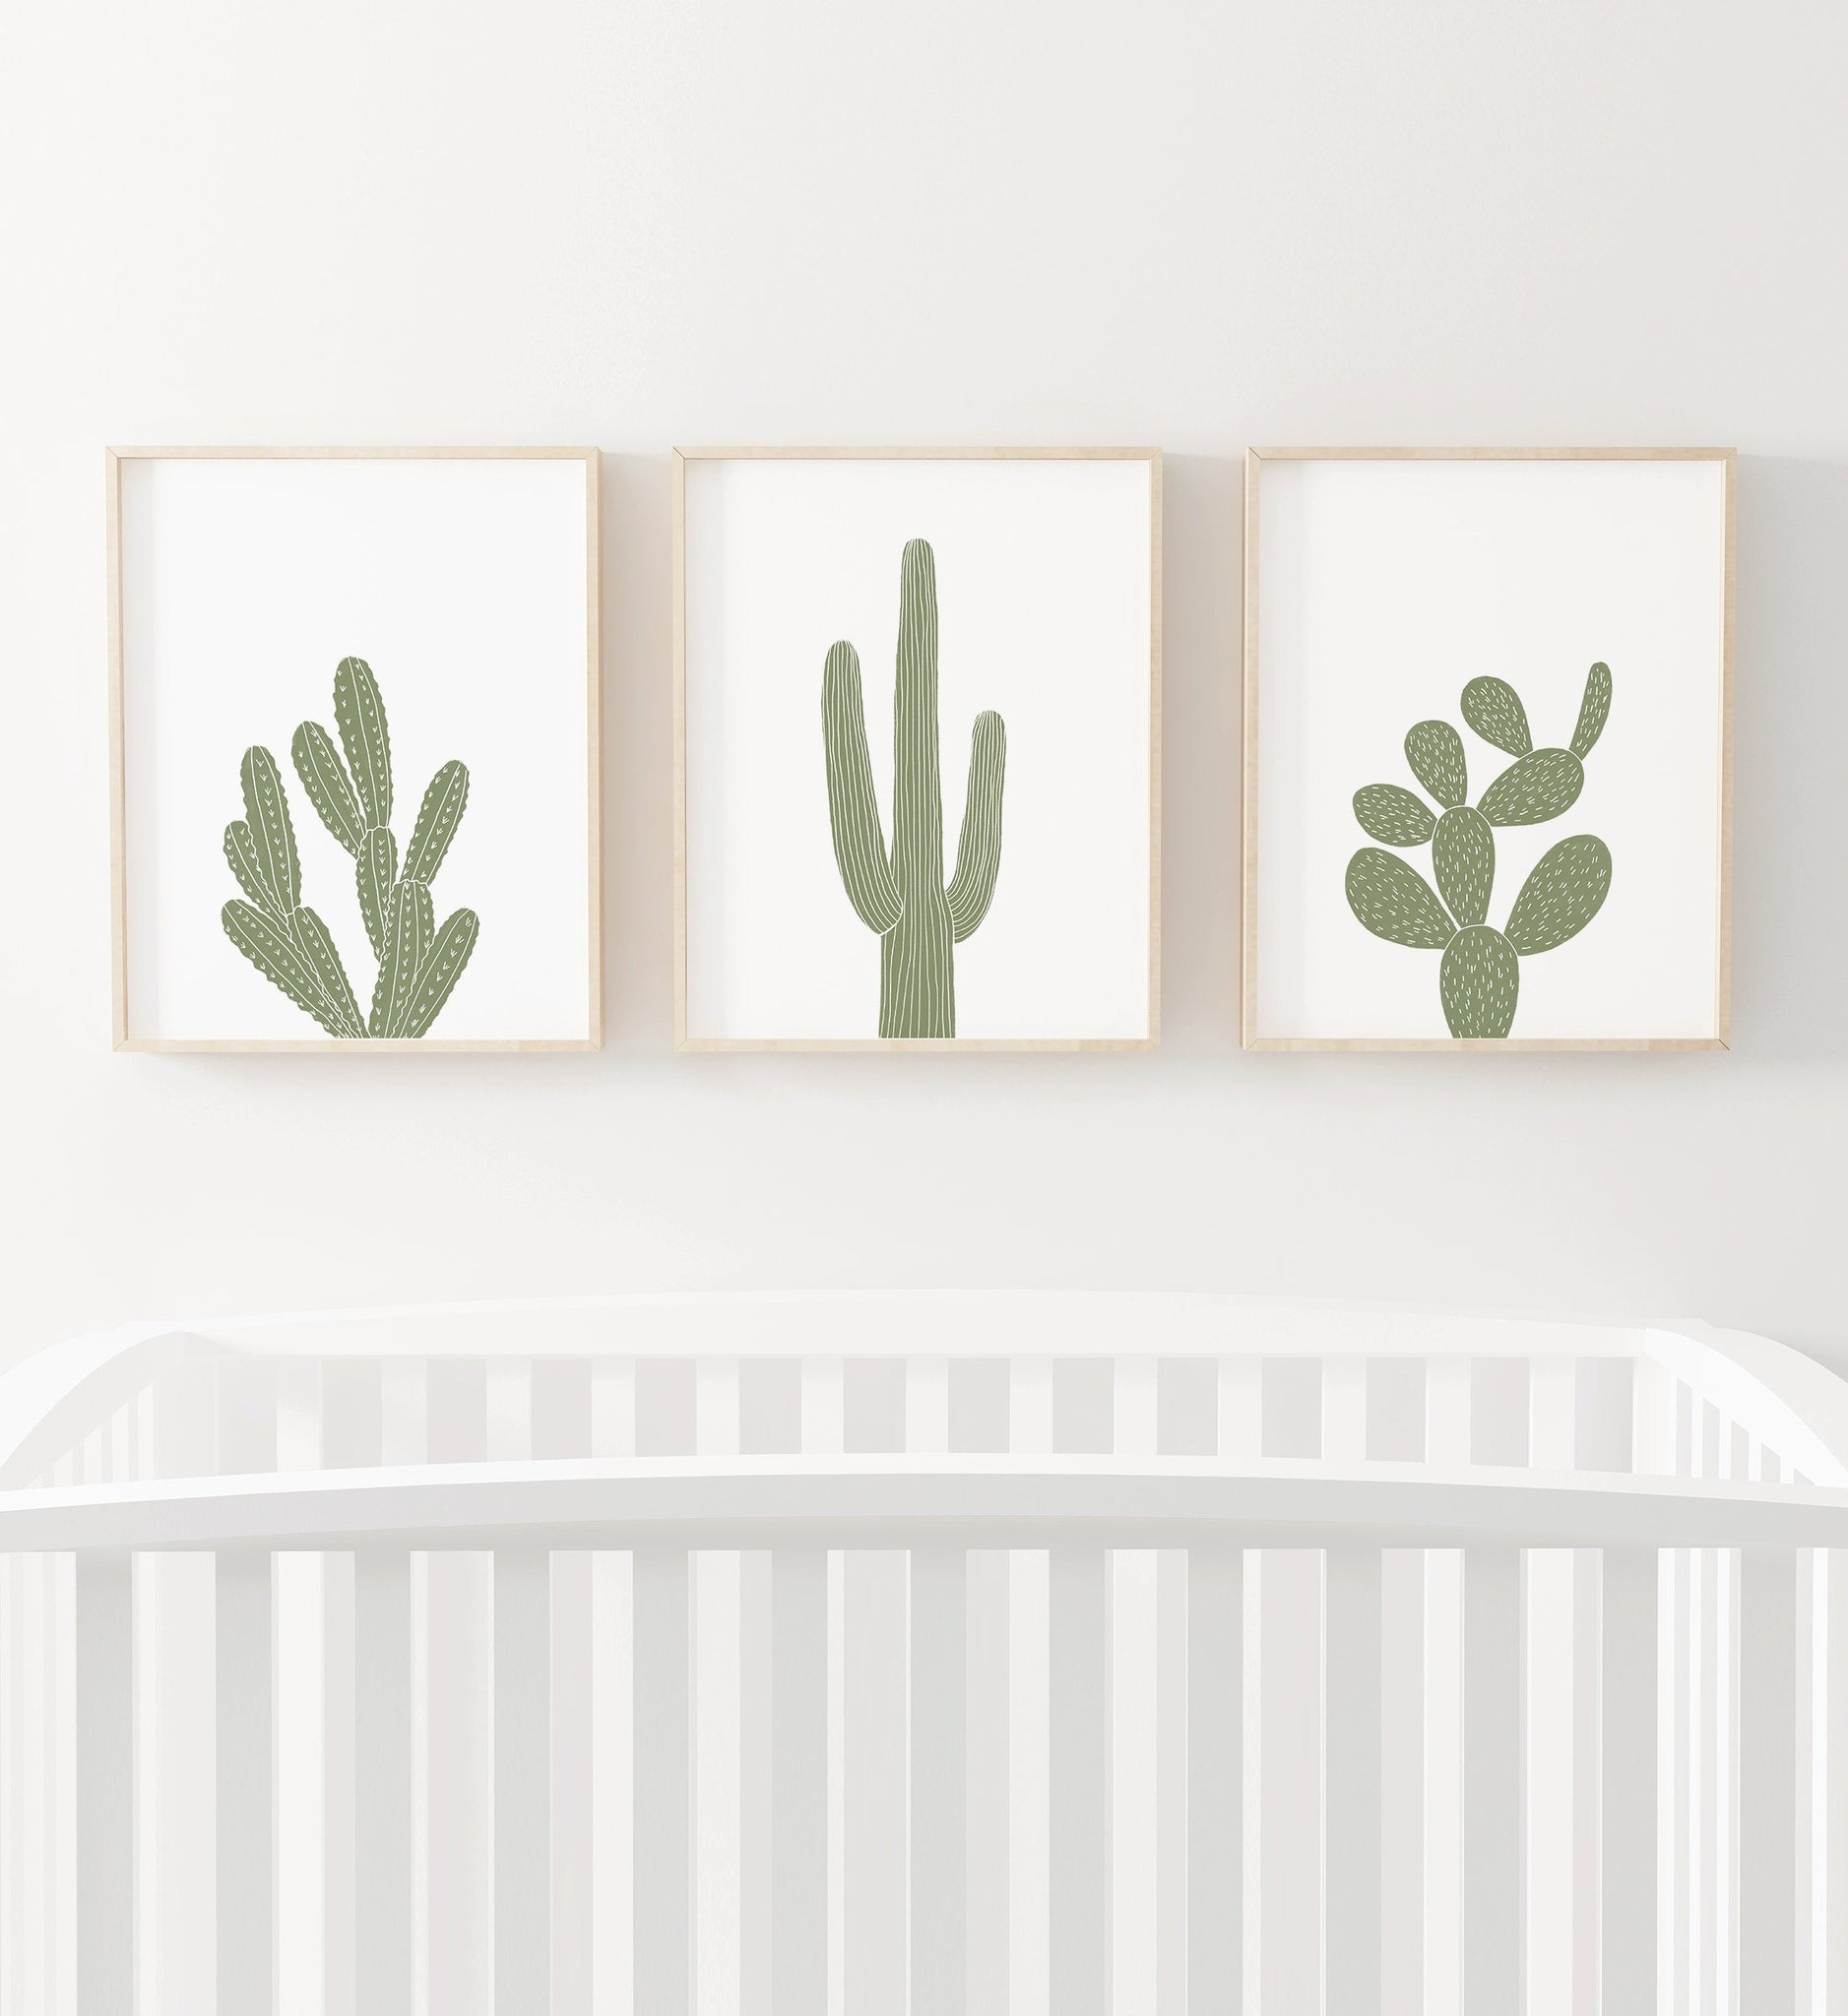 Green Cactus Set of 3 Prints